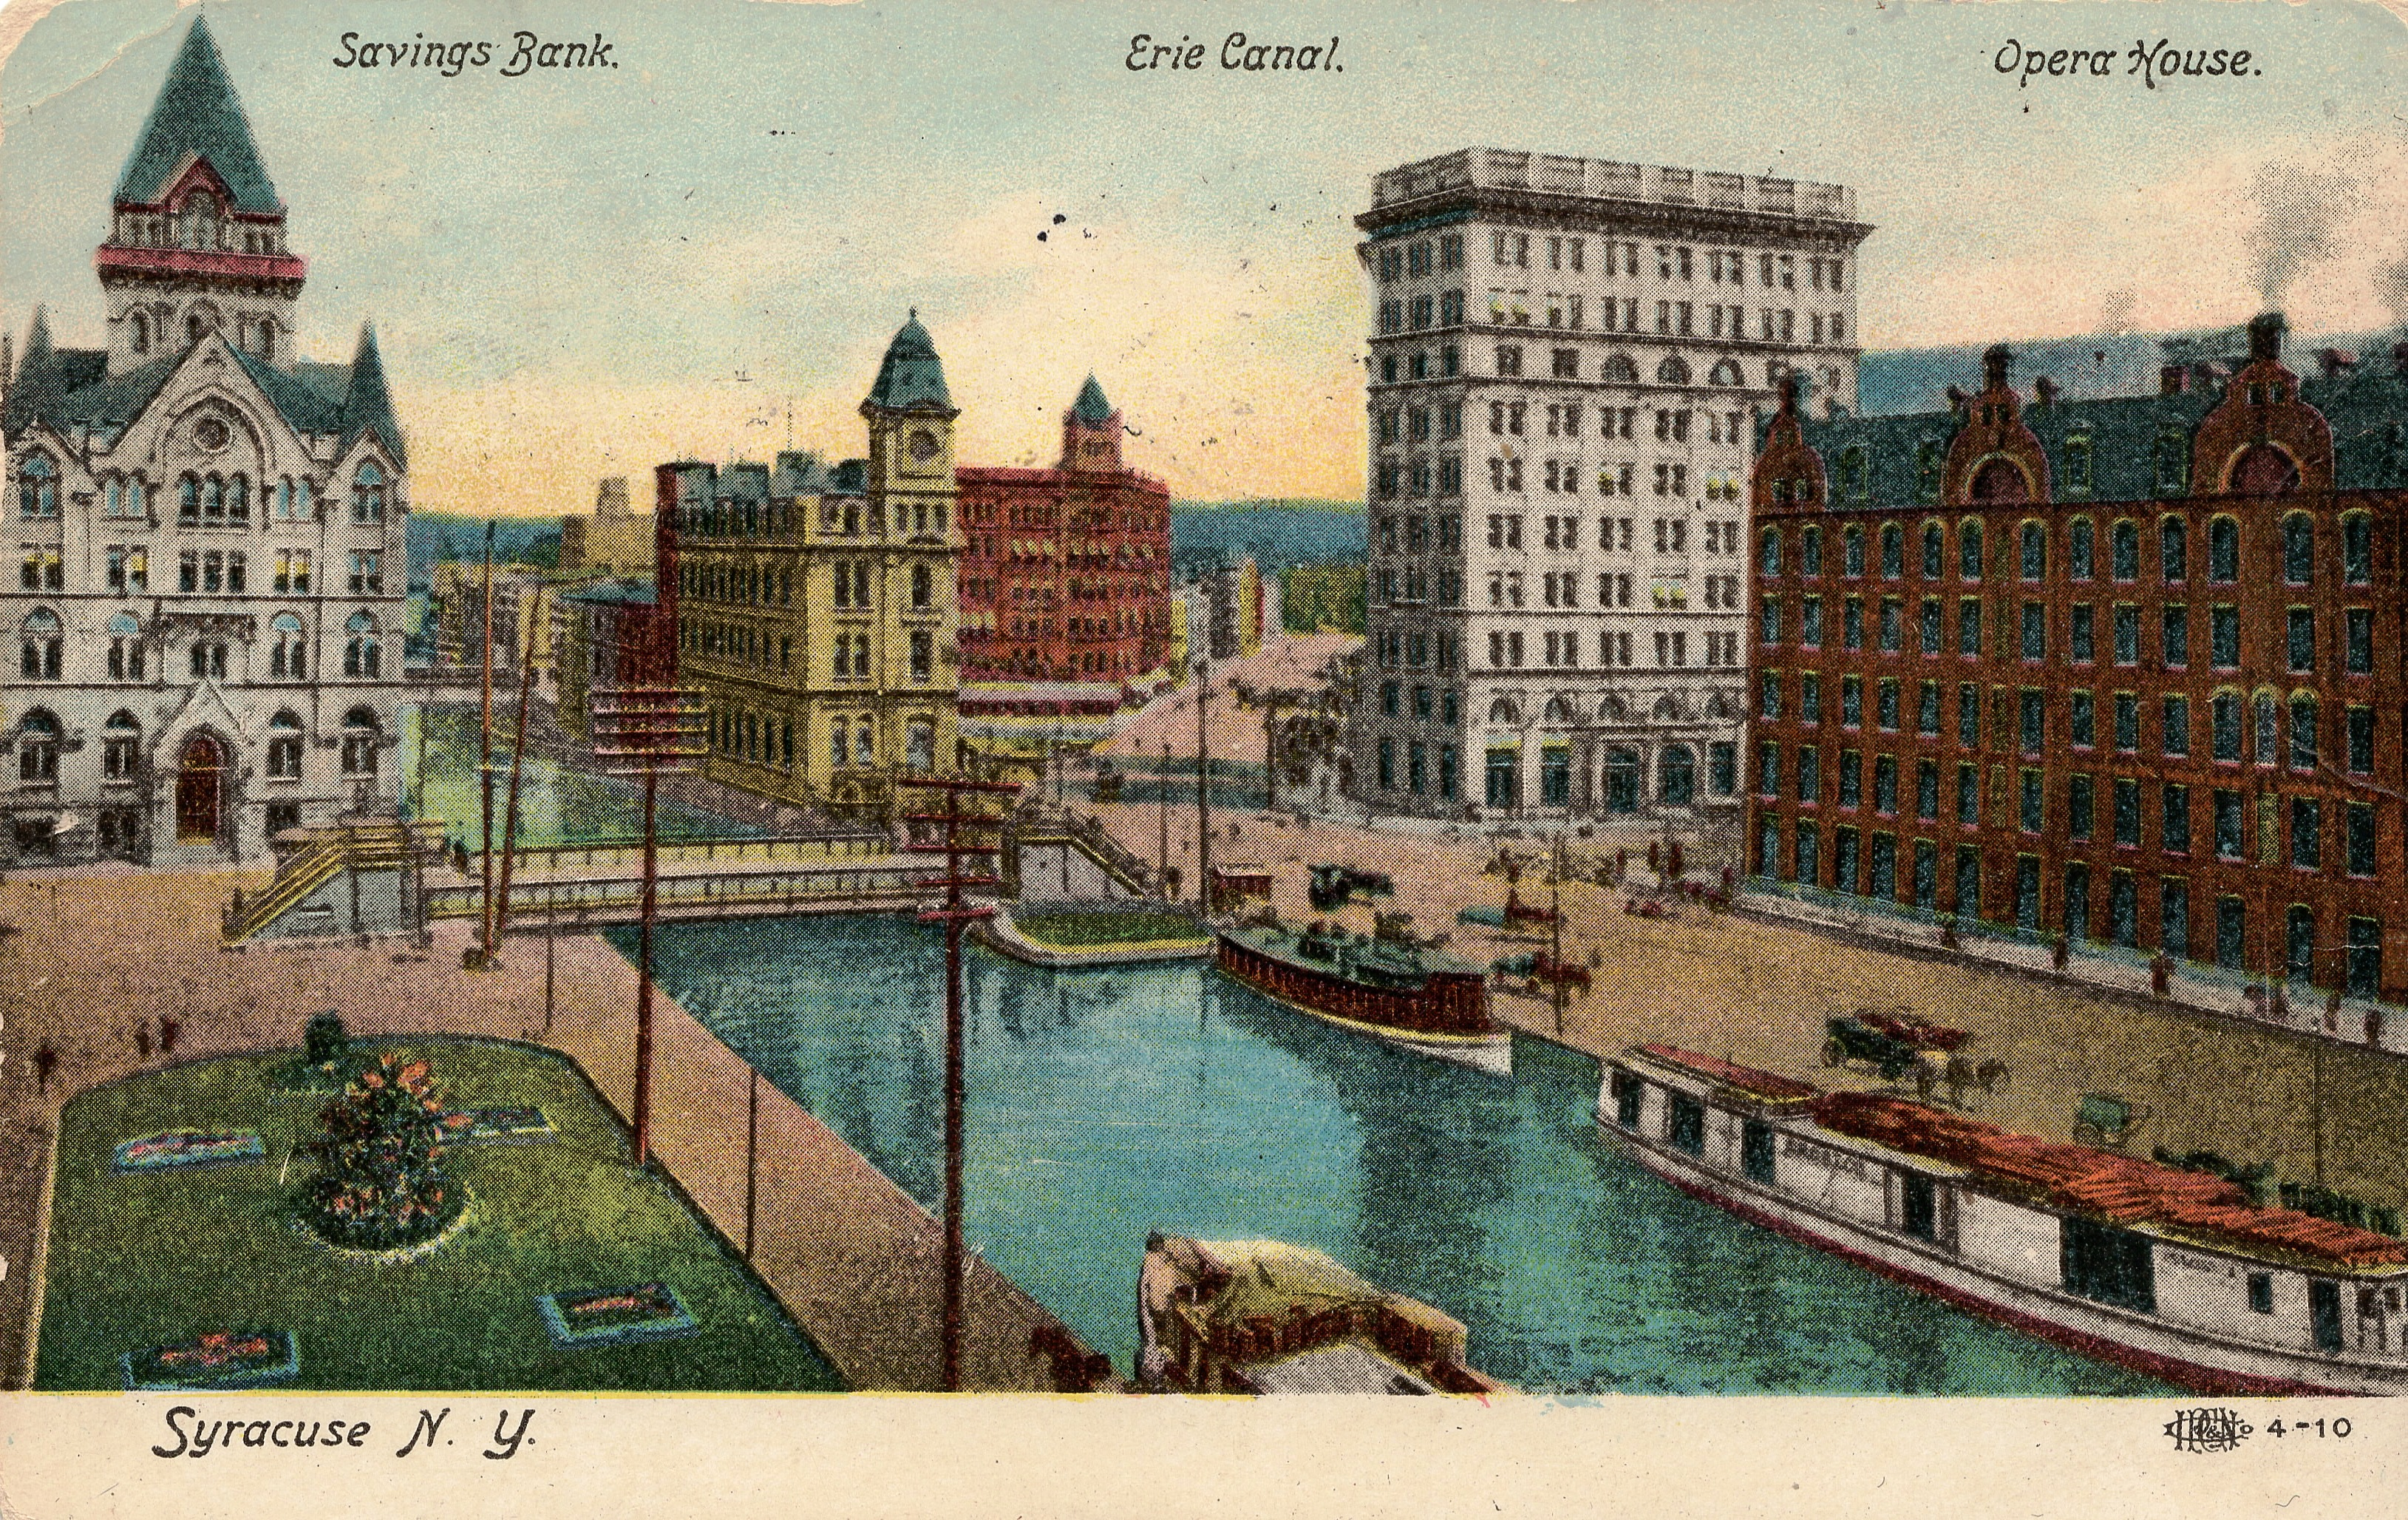 Syracuse & the Erie Canal: 200 Years